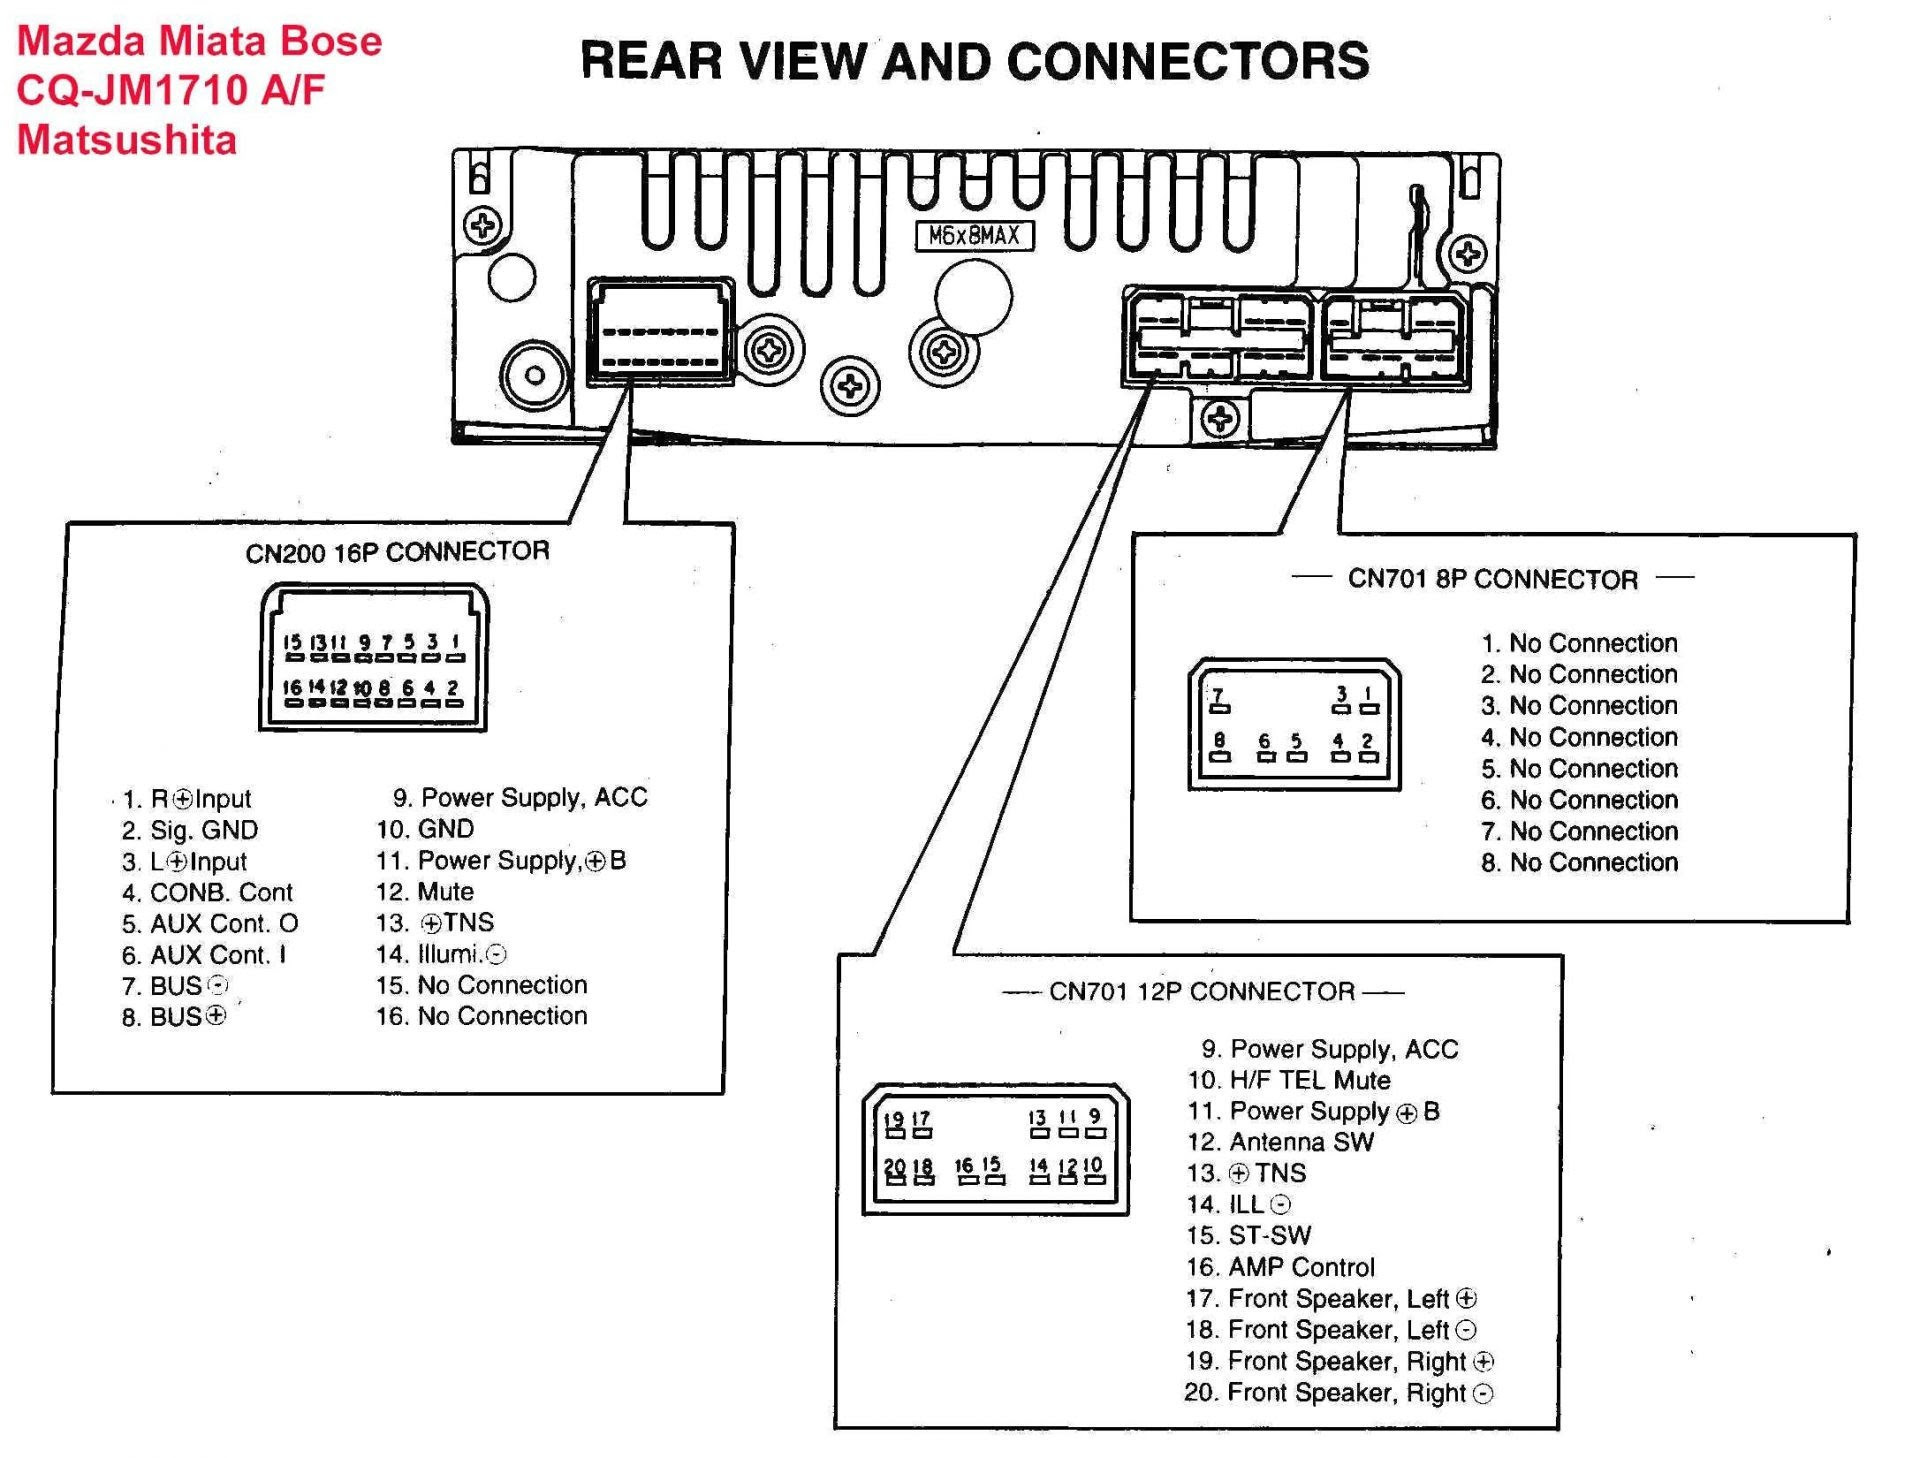 40 Cadillac St Bose Amp Wire Diagram   Cars Wiring Diagram